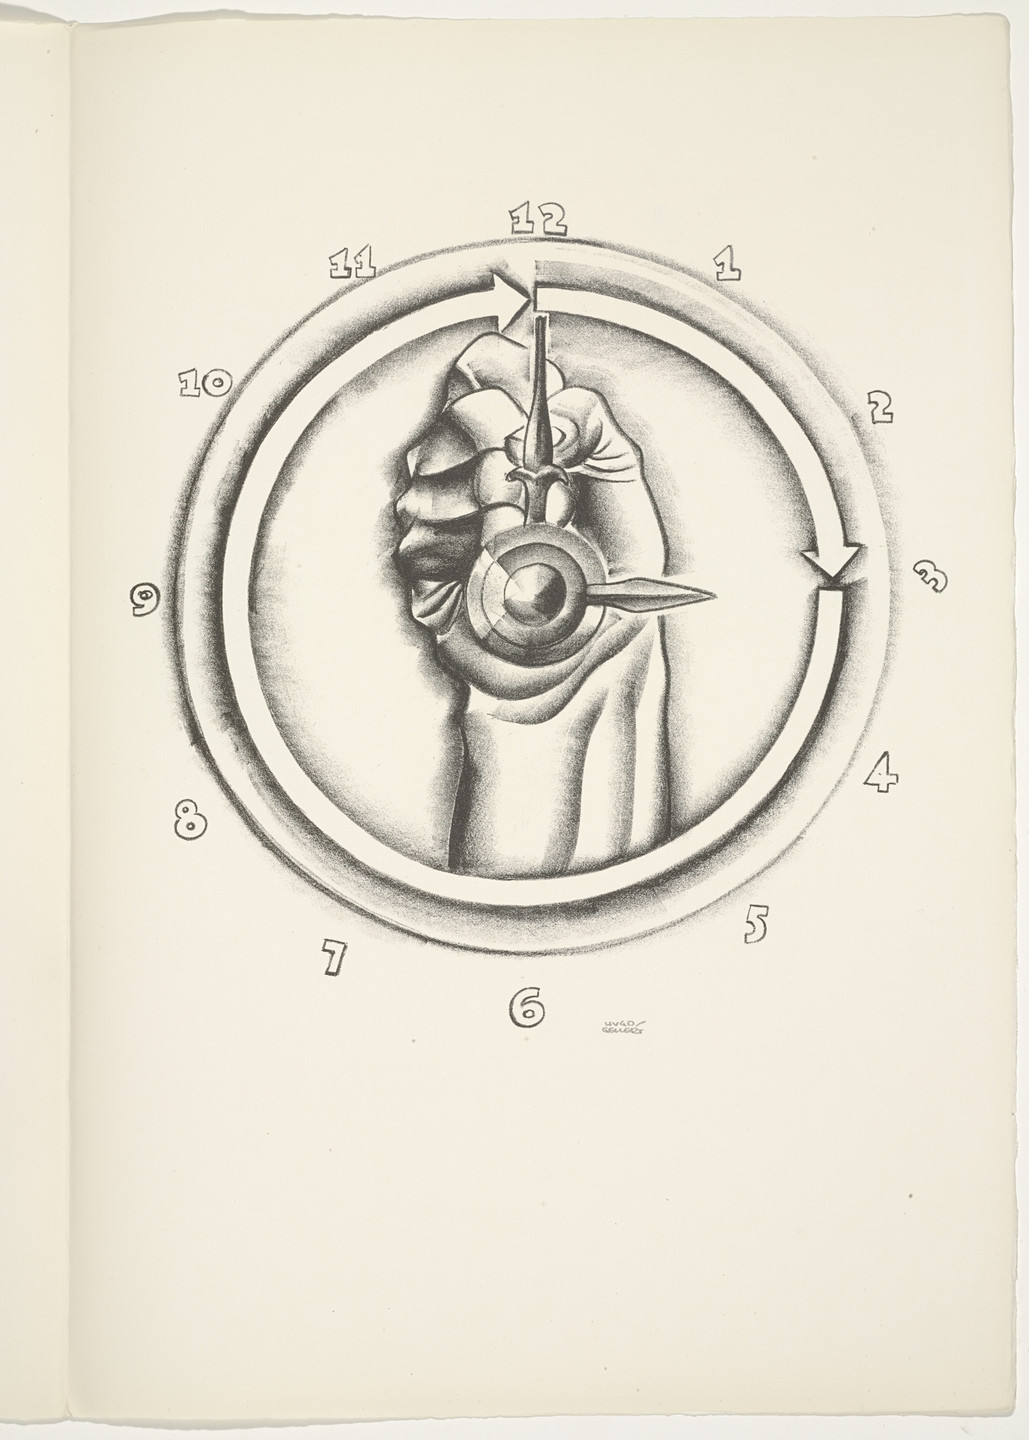 Hugo Gellert. Plate (folio 82) from 'Capital' in Pictures. 1933